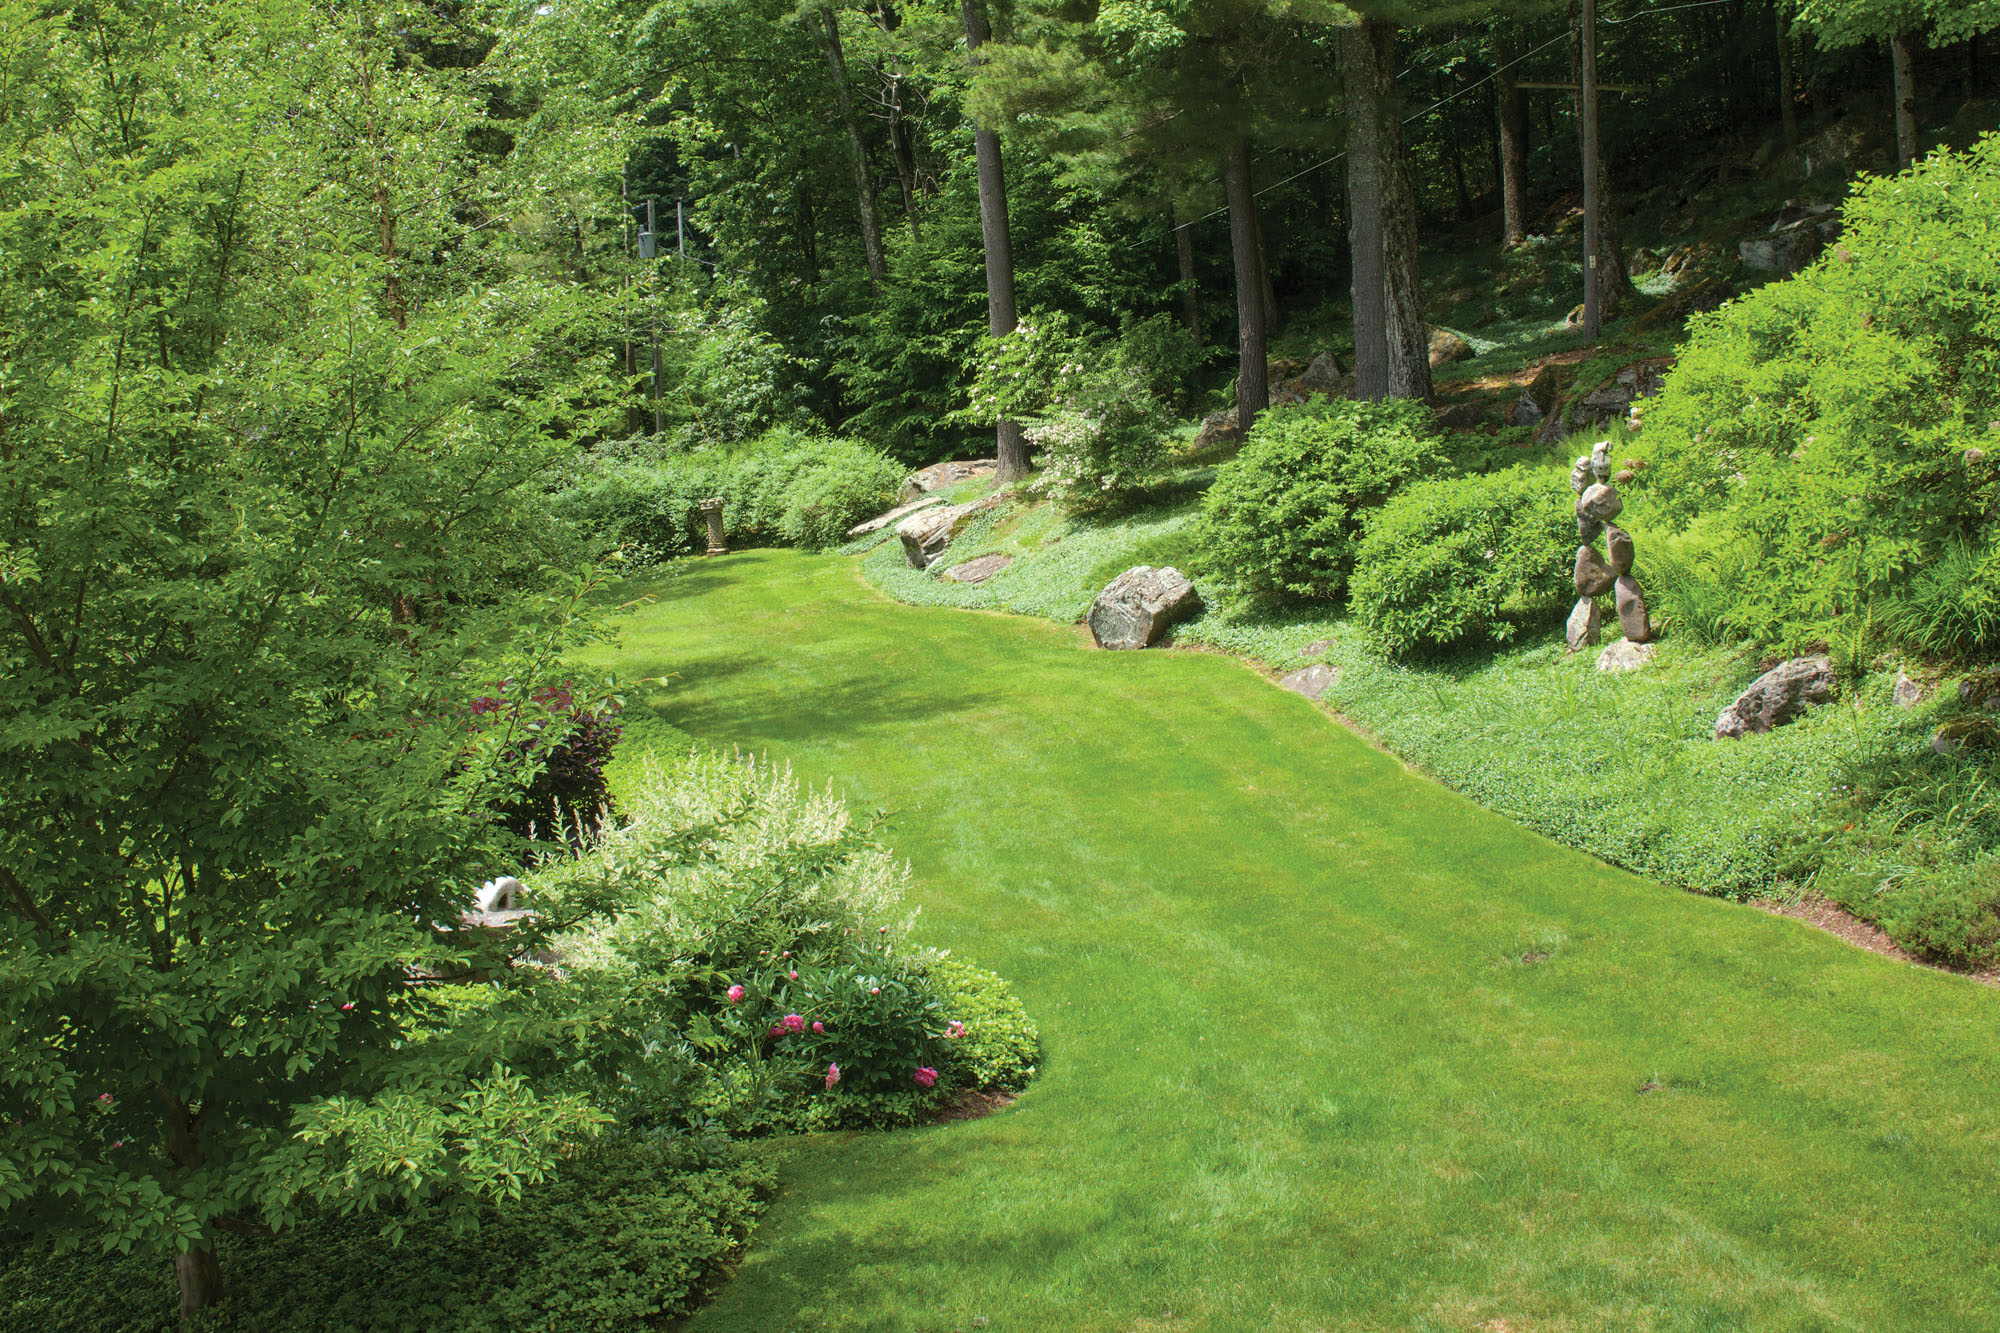 Ground Covers and Underplanting